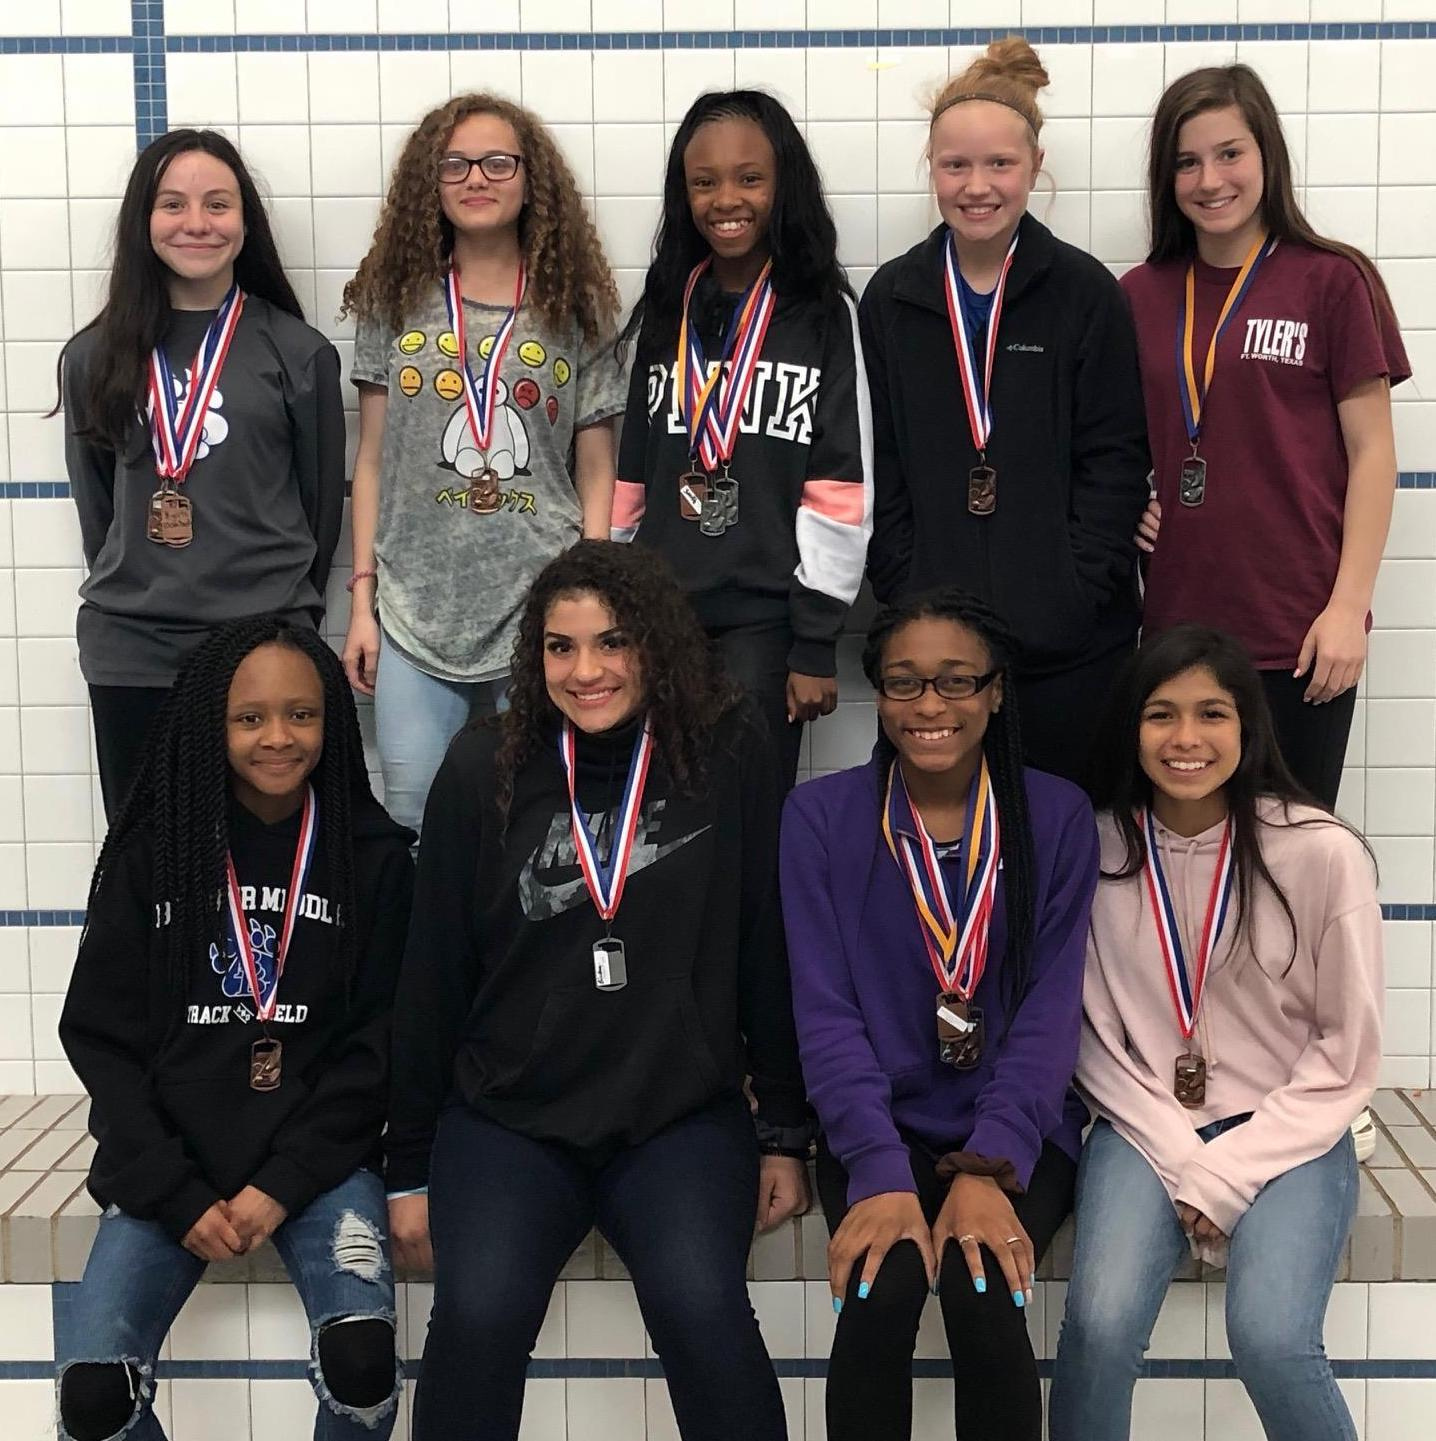 Ten Brewer Middle School girls will advance to the District Track Meet after placing in the top 3 of their events in the Quad County Zone 1 Track Meet.